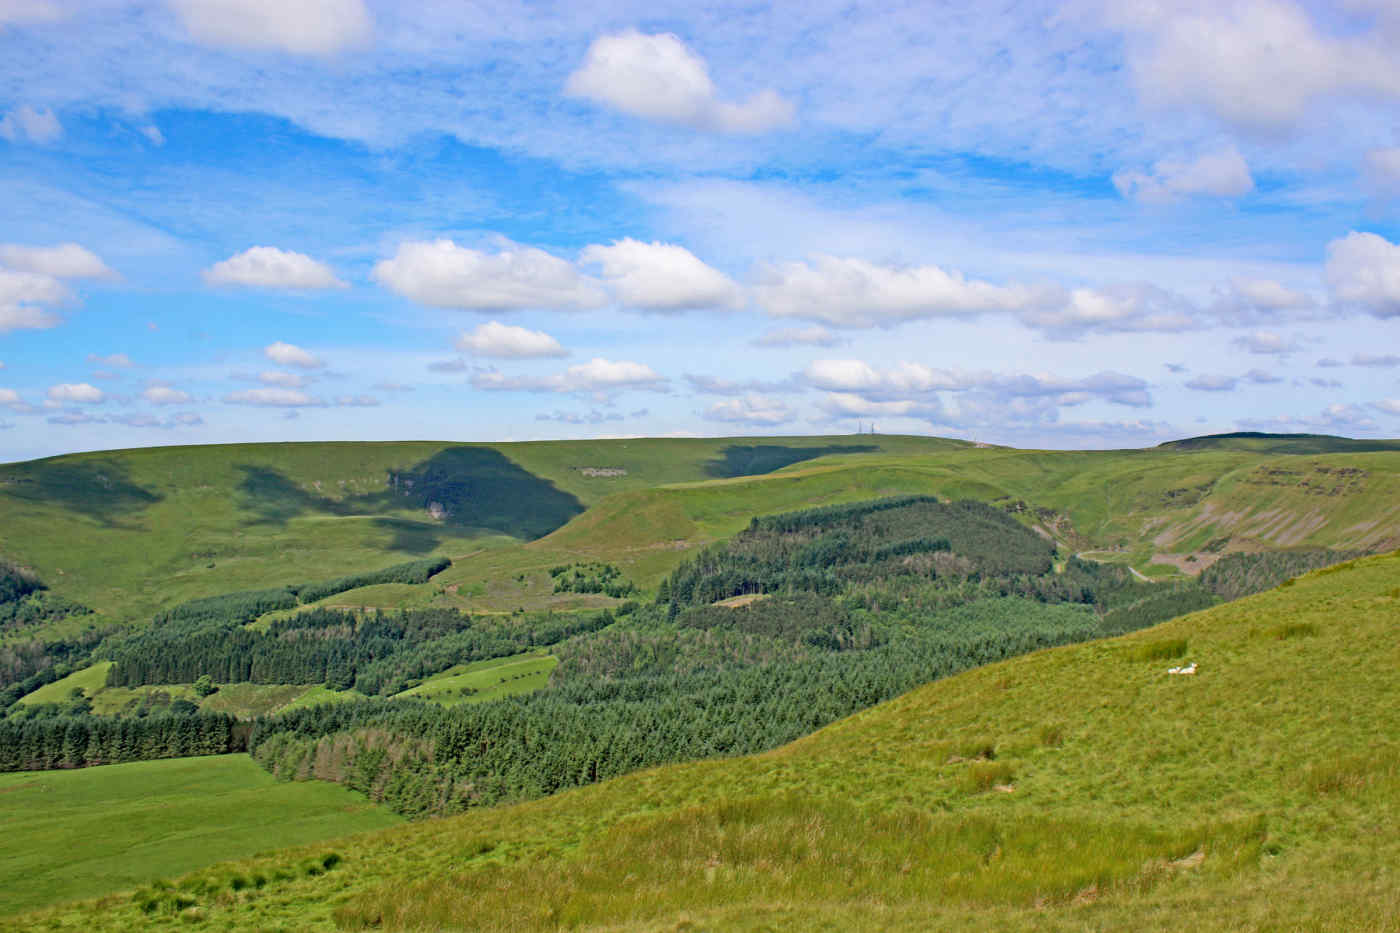 Brecon Beacons National Park • Brecon, Wales